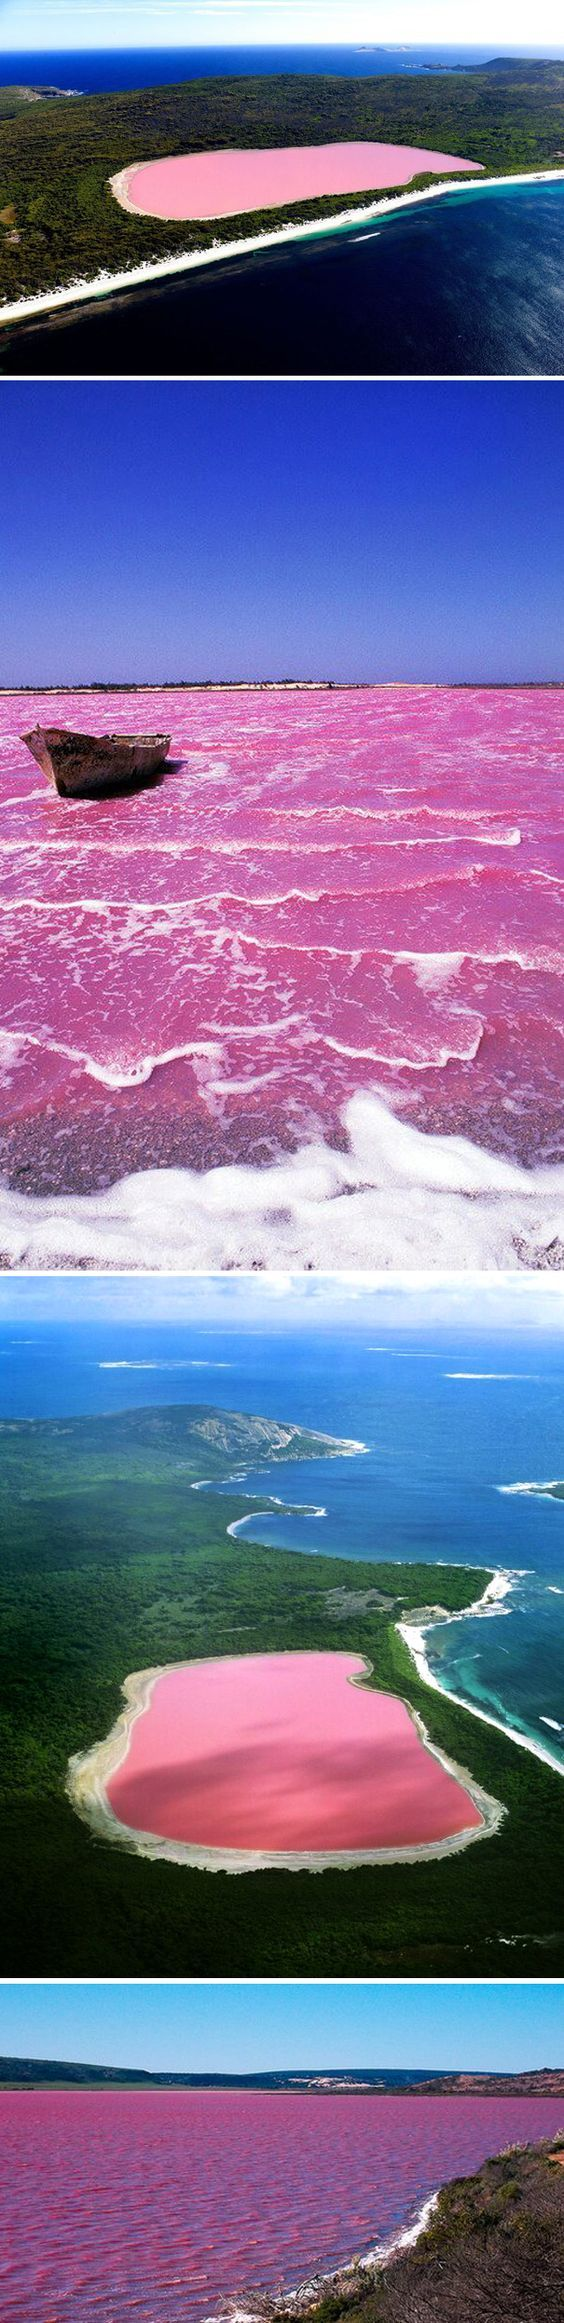 Lake Hillier, Middle Island, Western Australia. The only naturally pink lake in the world.